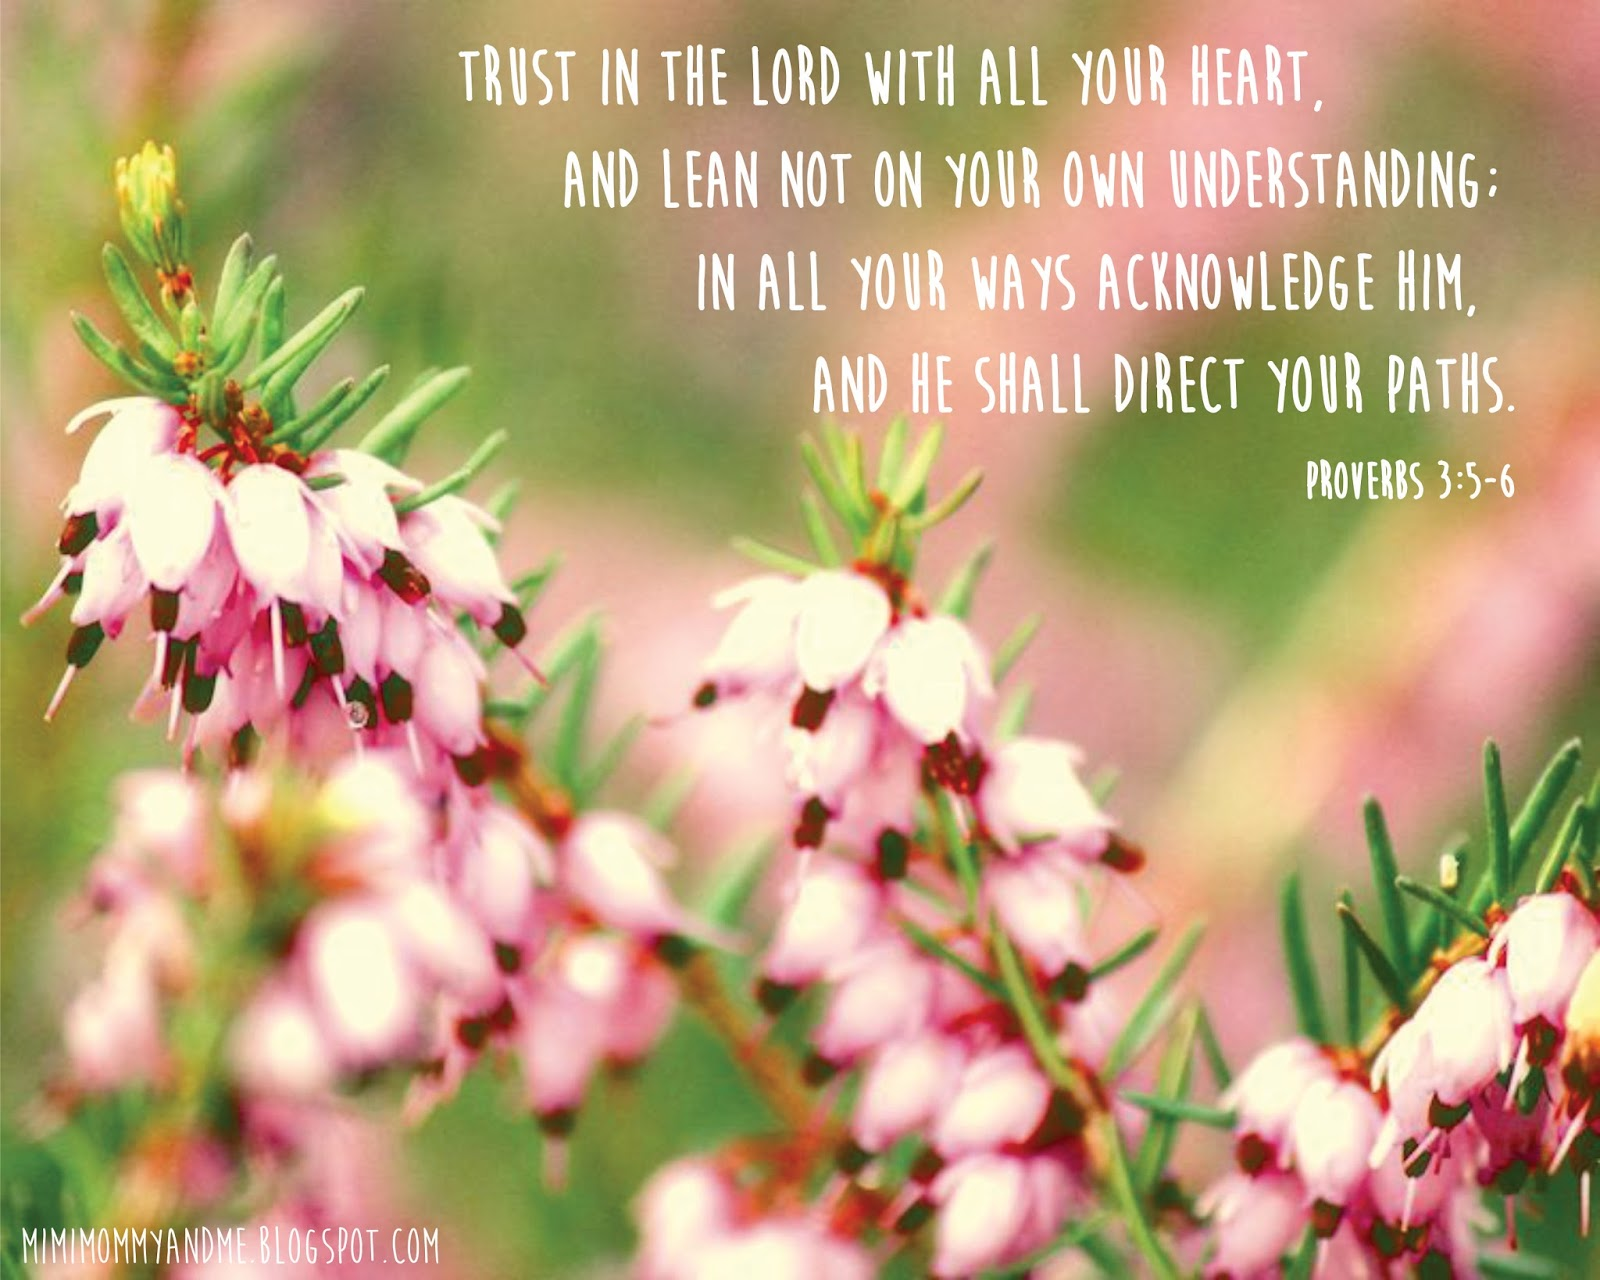 http://mimimommyandme.blogspot.com/2014/05/trust-in-lord-free-printable.html #bibleverse #freeprintable